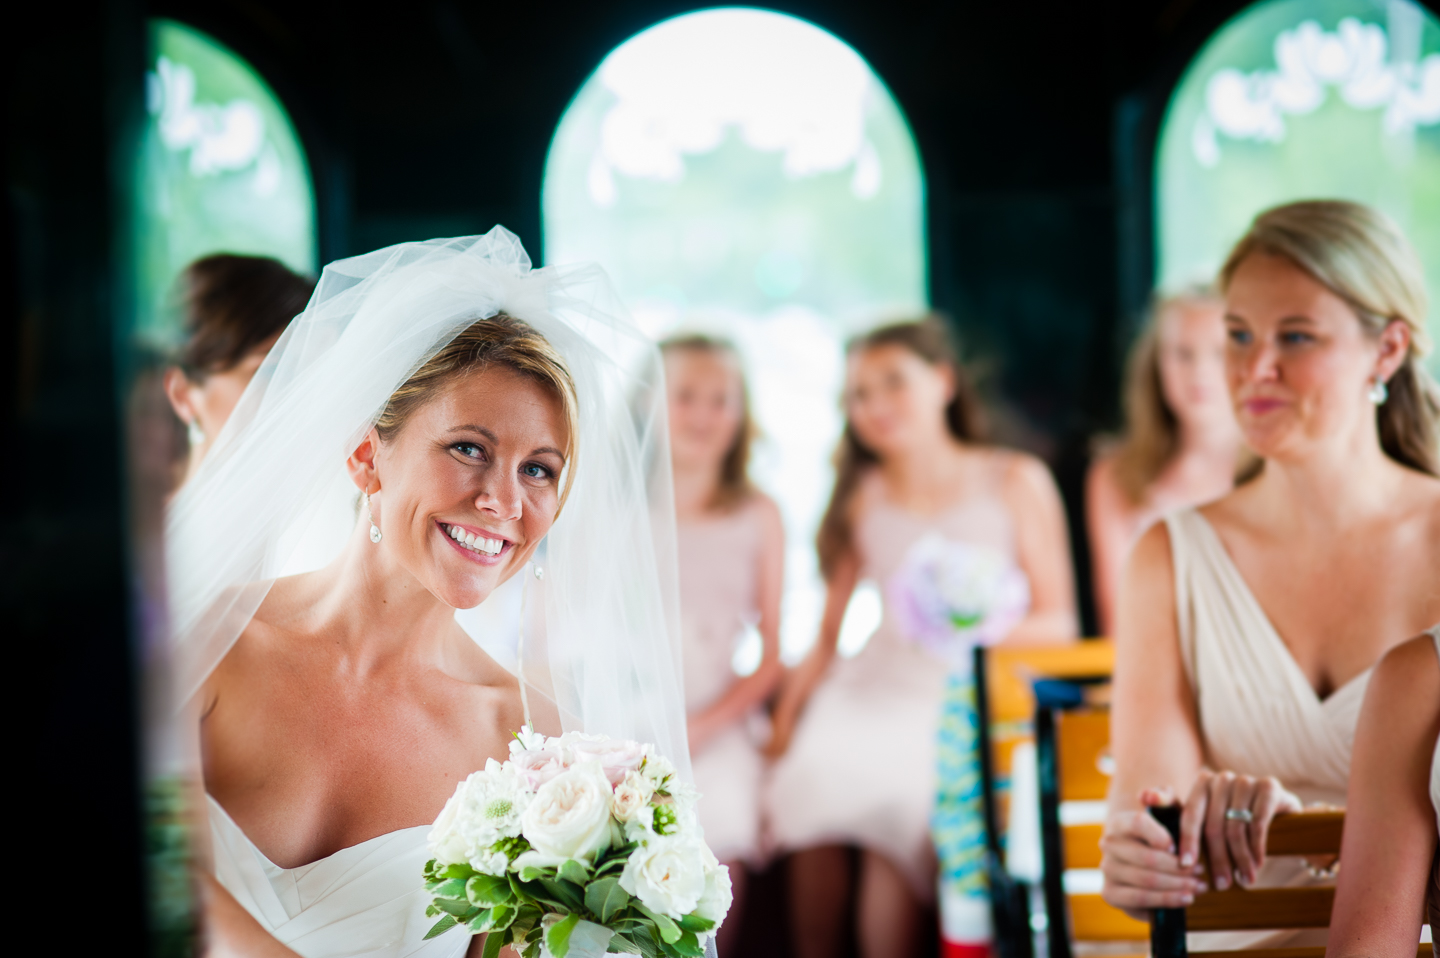 beautiful brides is all smiles during the trolley ride to her wedding ceremony